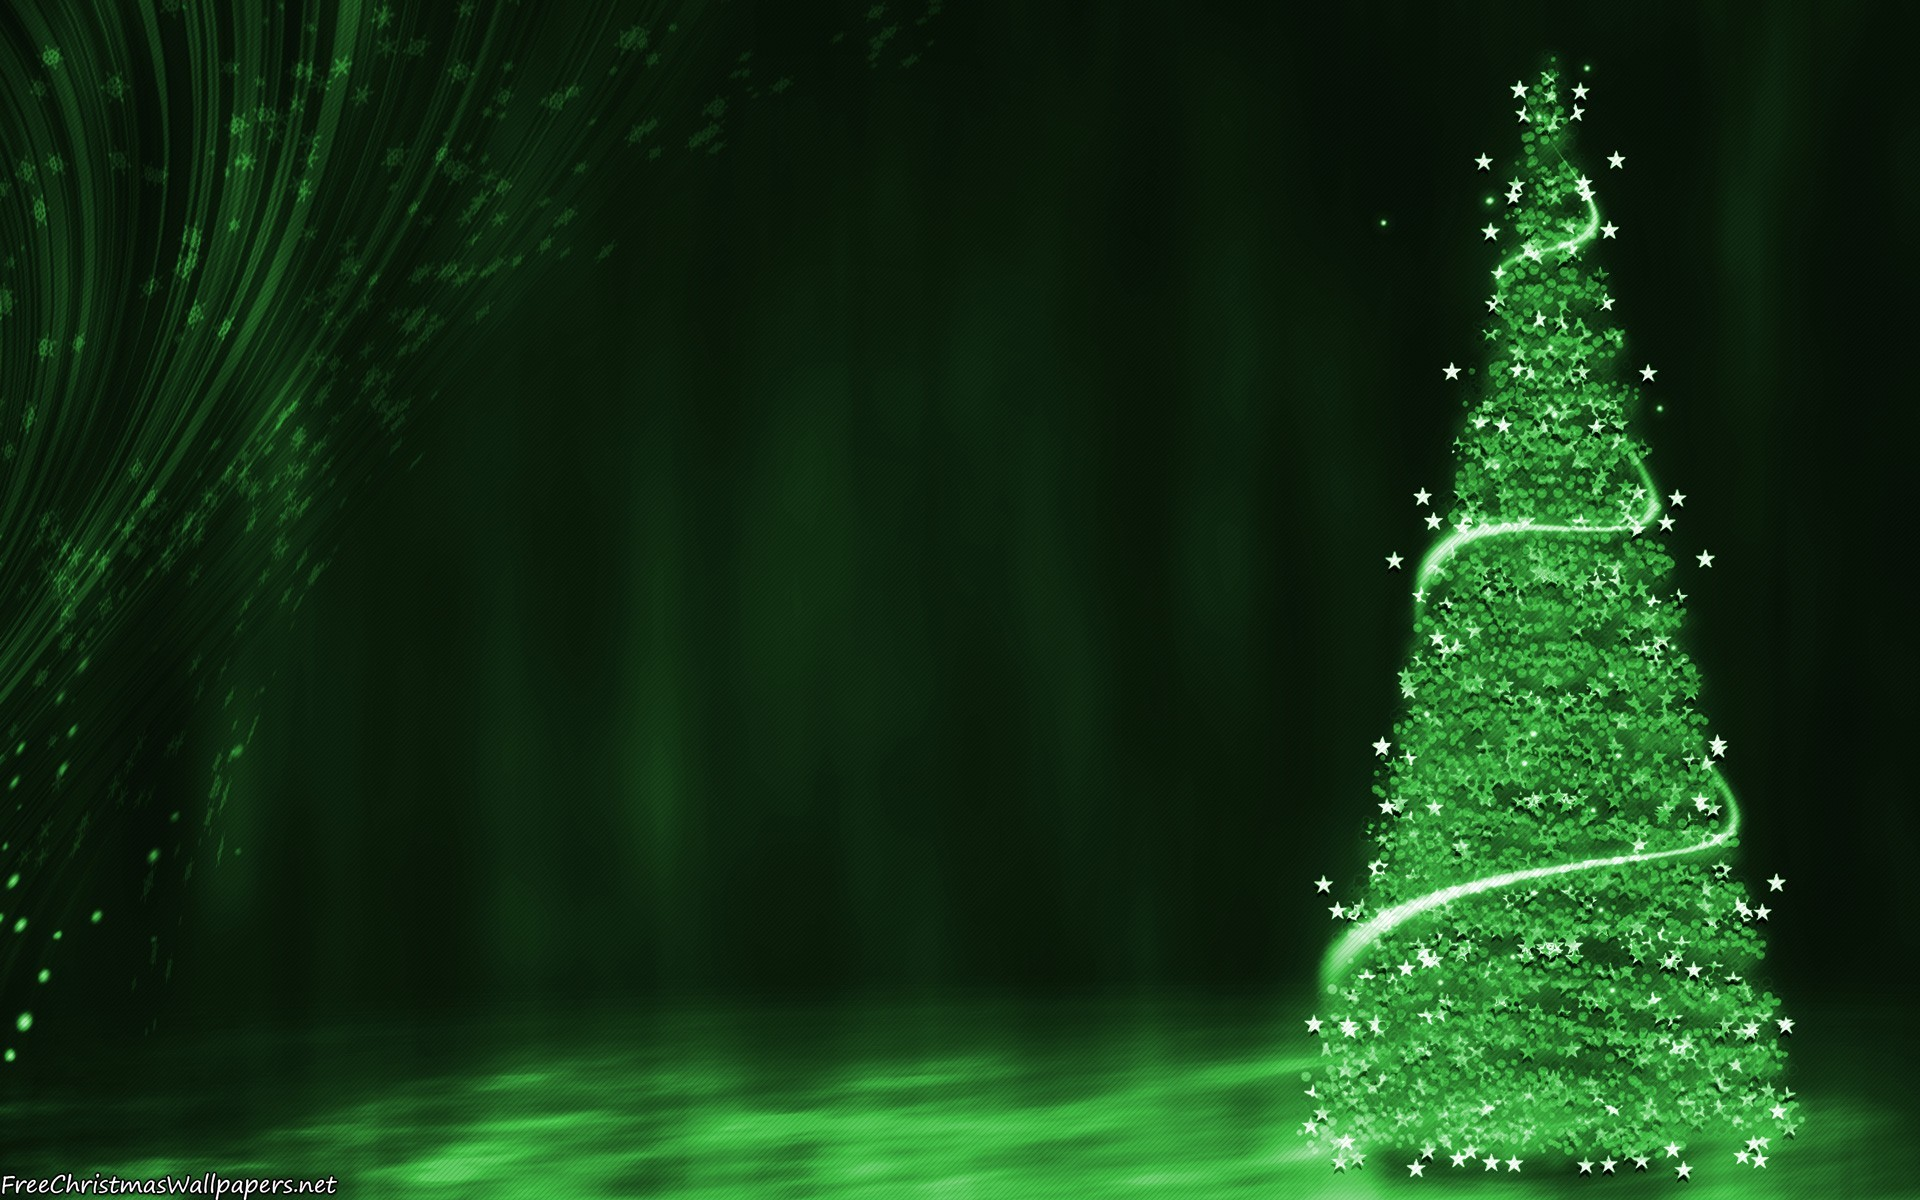 1920x1200 Green Christmas Background (10)